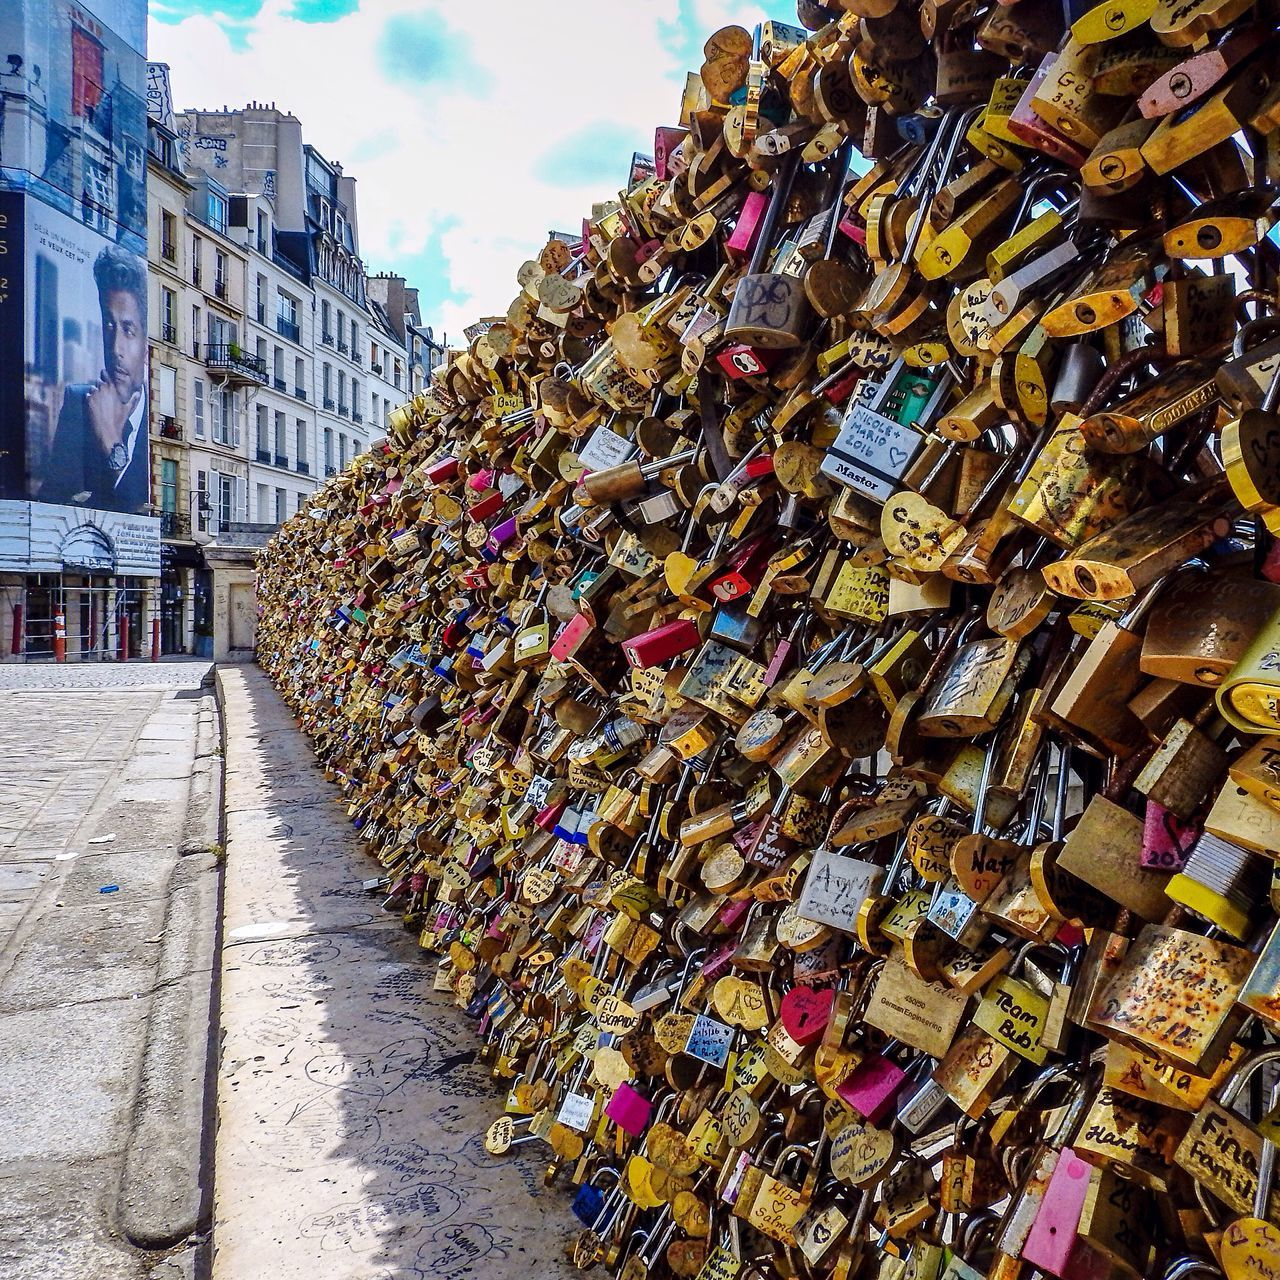 padlock, abundance, love lock, large group of objects, security, lock, love, railing, safety, protection, hope, architecture, metal, day, outdoors, variation, hanging, connection, hope - concept, bridge - man made structure, built structure, no people, building exterior, unity, sky, multi colored, oath, close-up